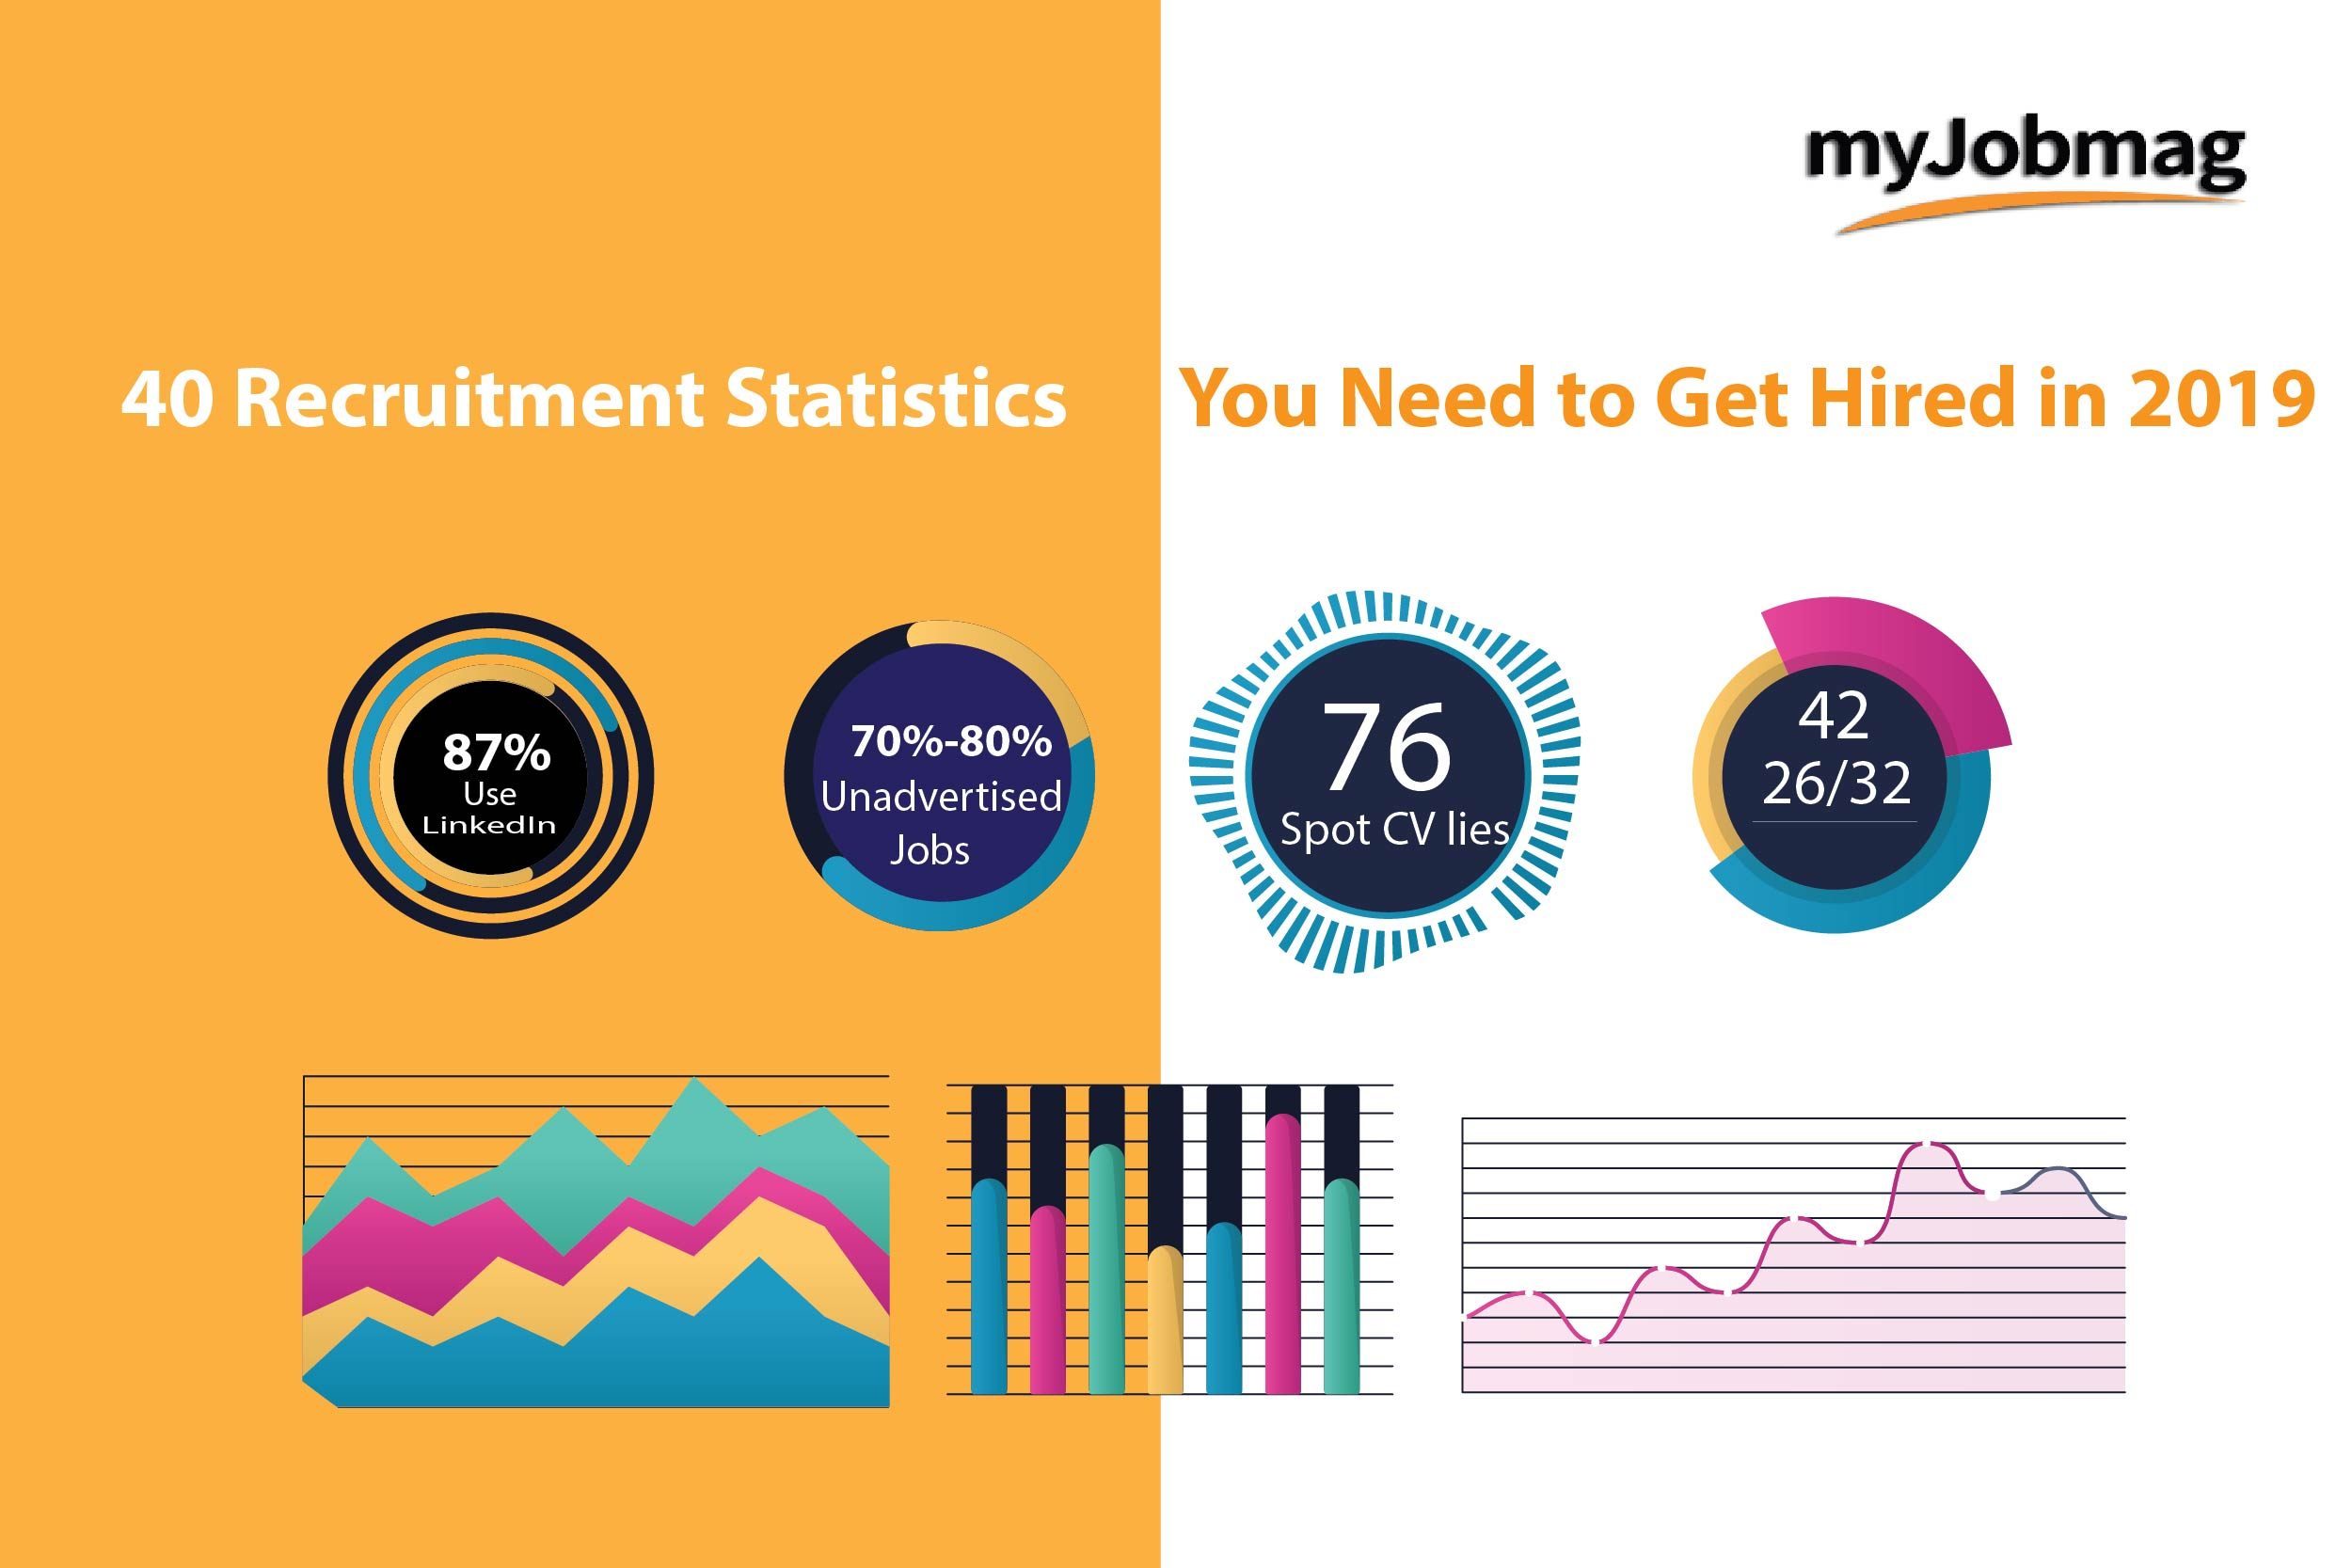 40 Recruitment Statistics You Need to Get Hired in 2019